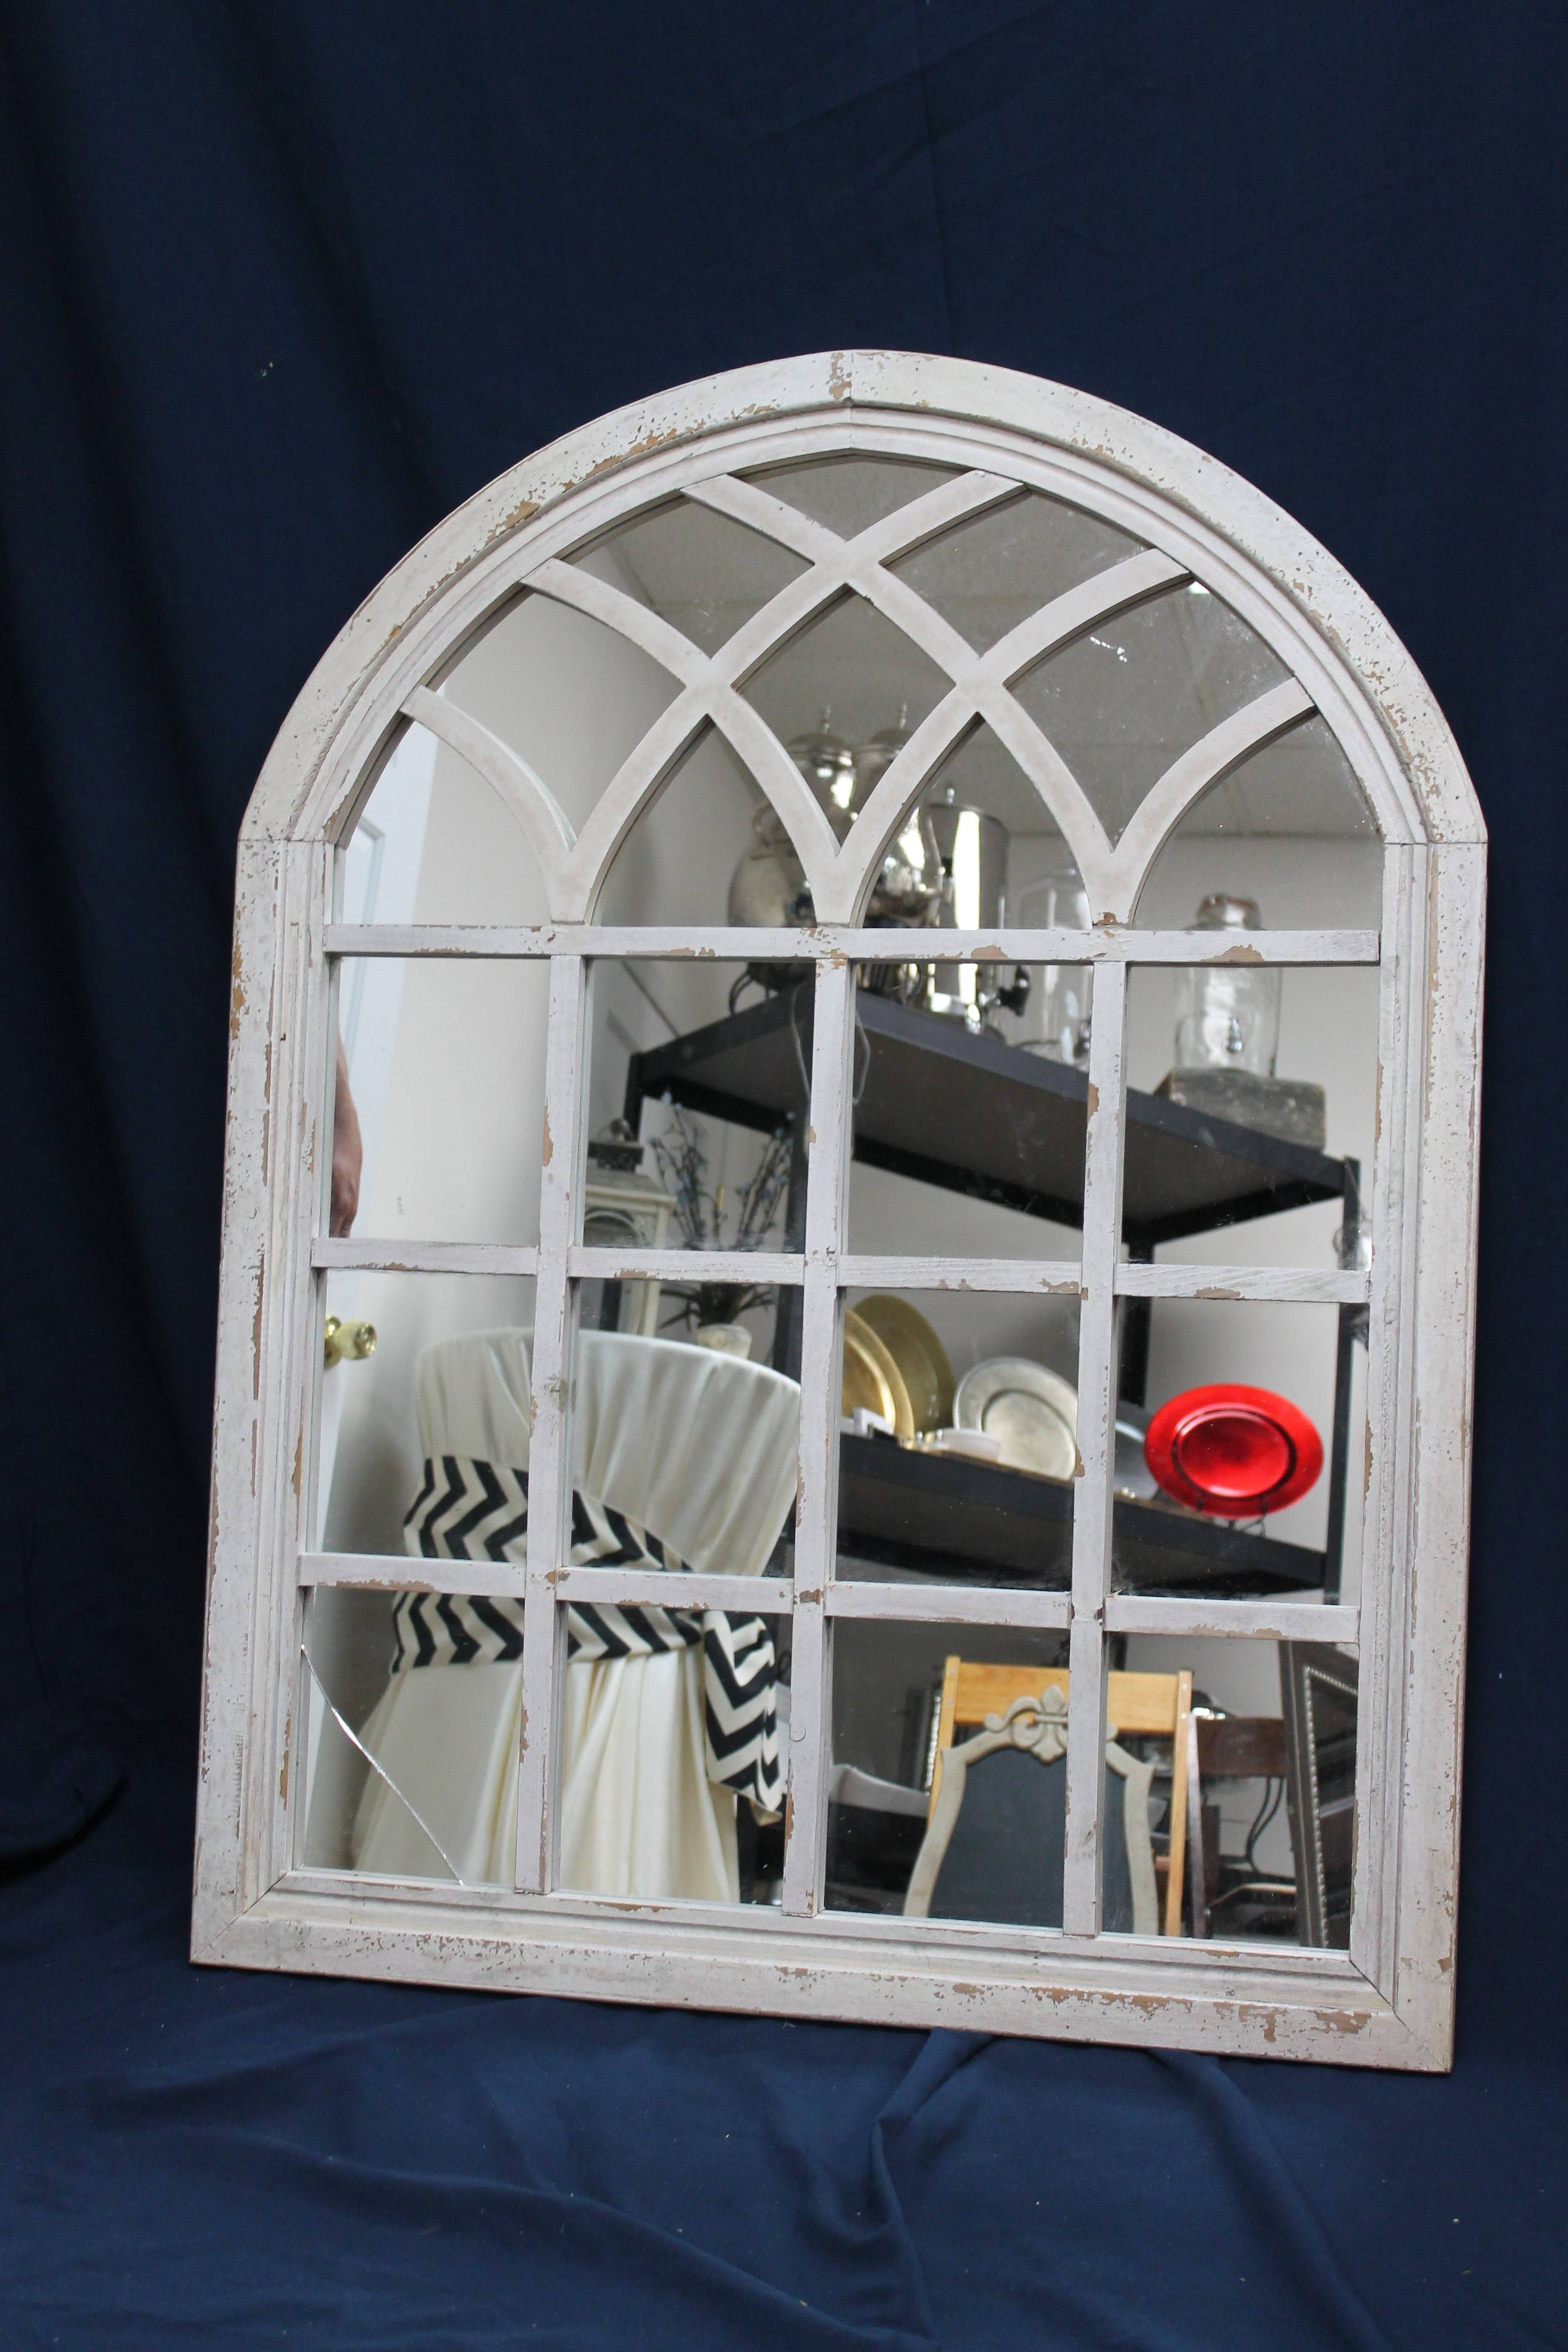 Cream Arched Window Pane With Mirrors | Ms Events intended for Arched Window Mirrors (Image 11 of 25)